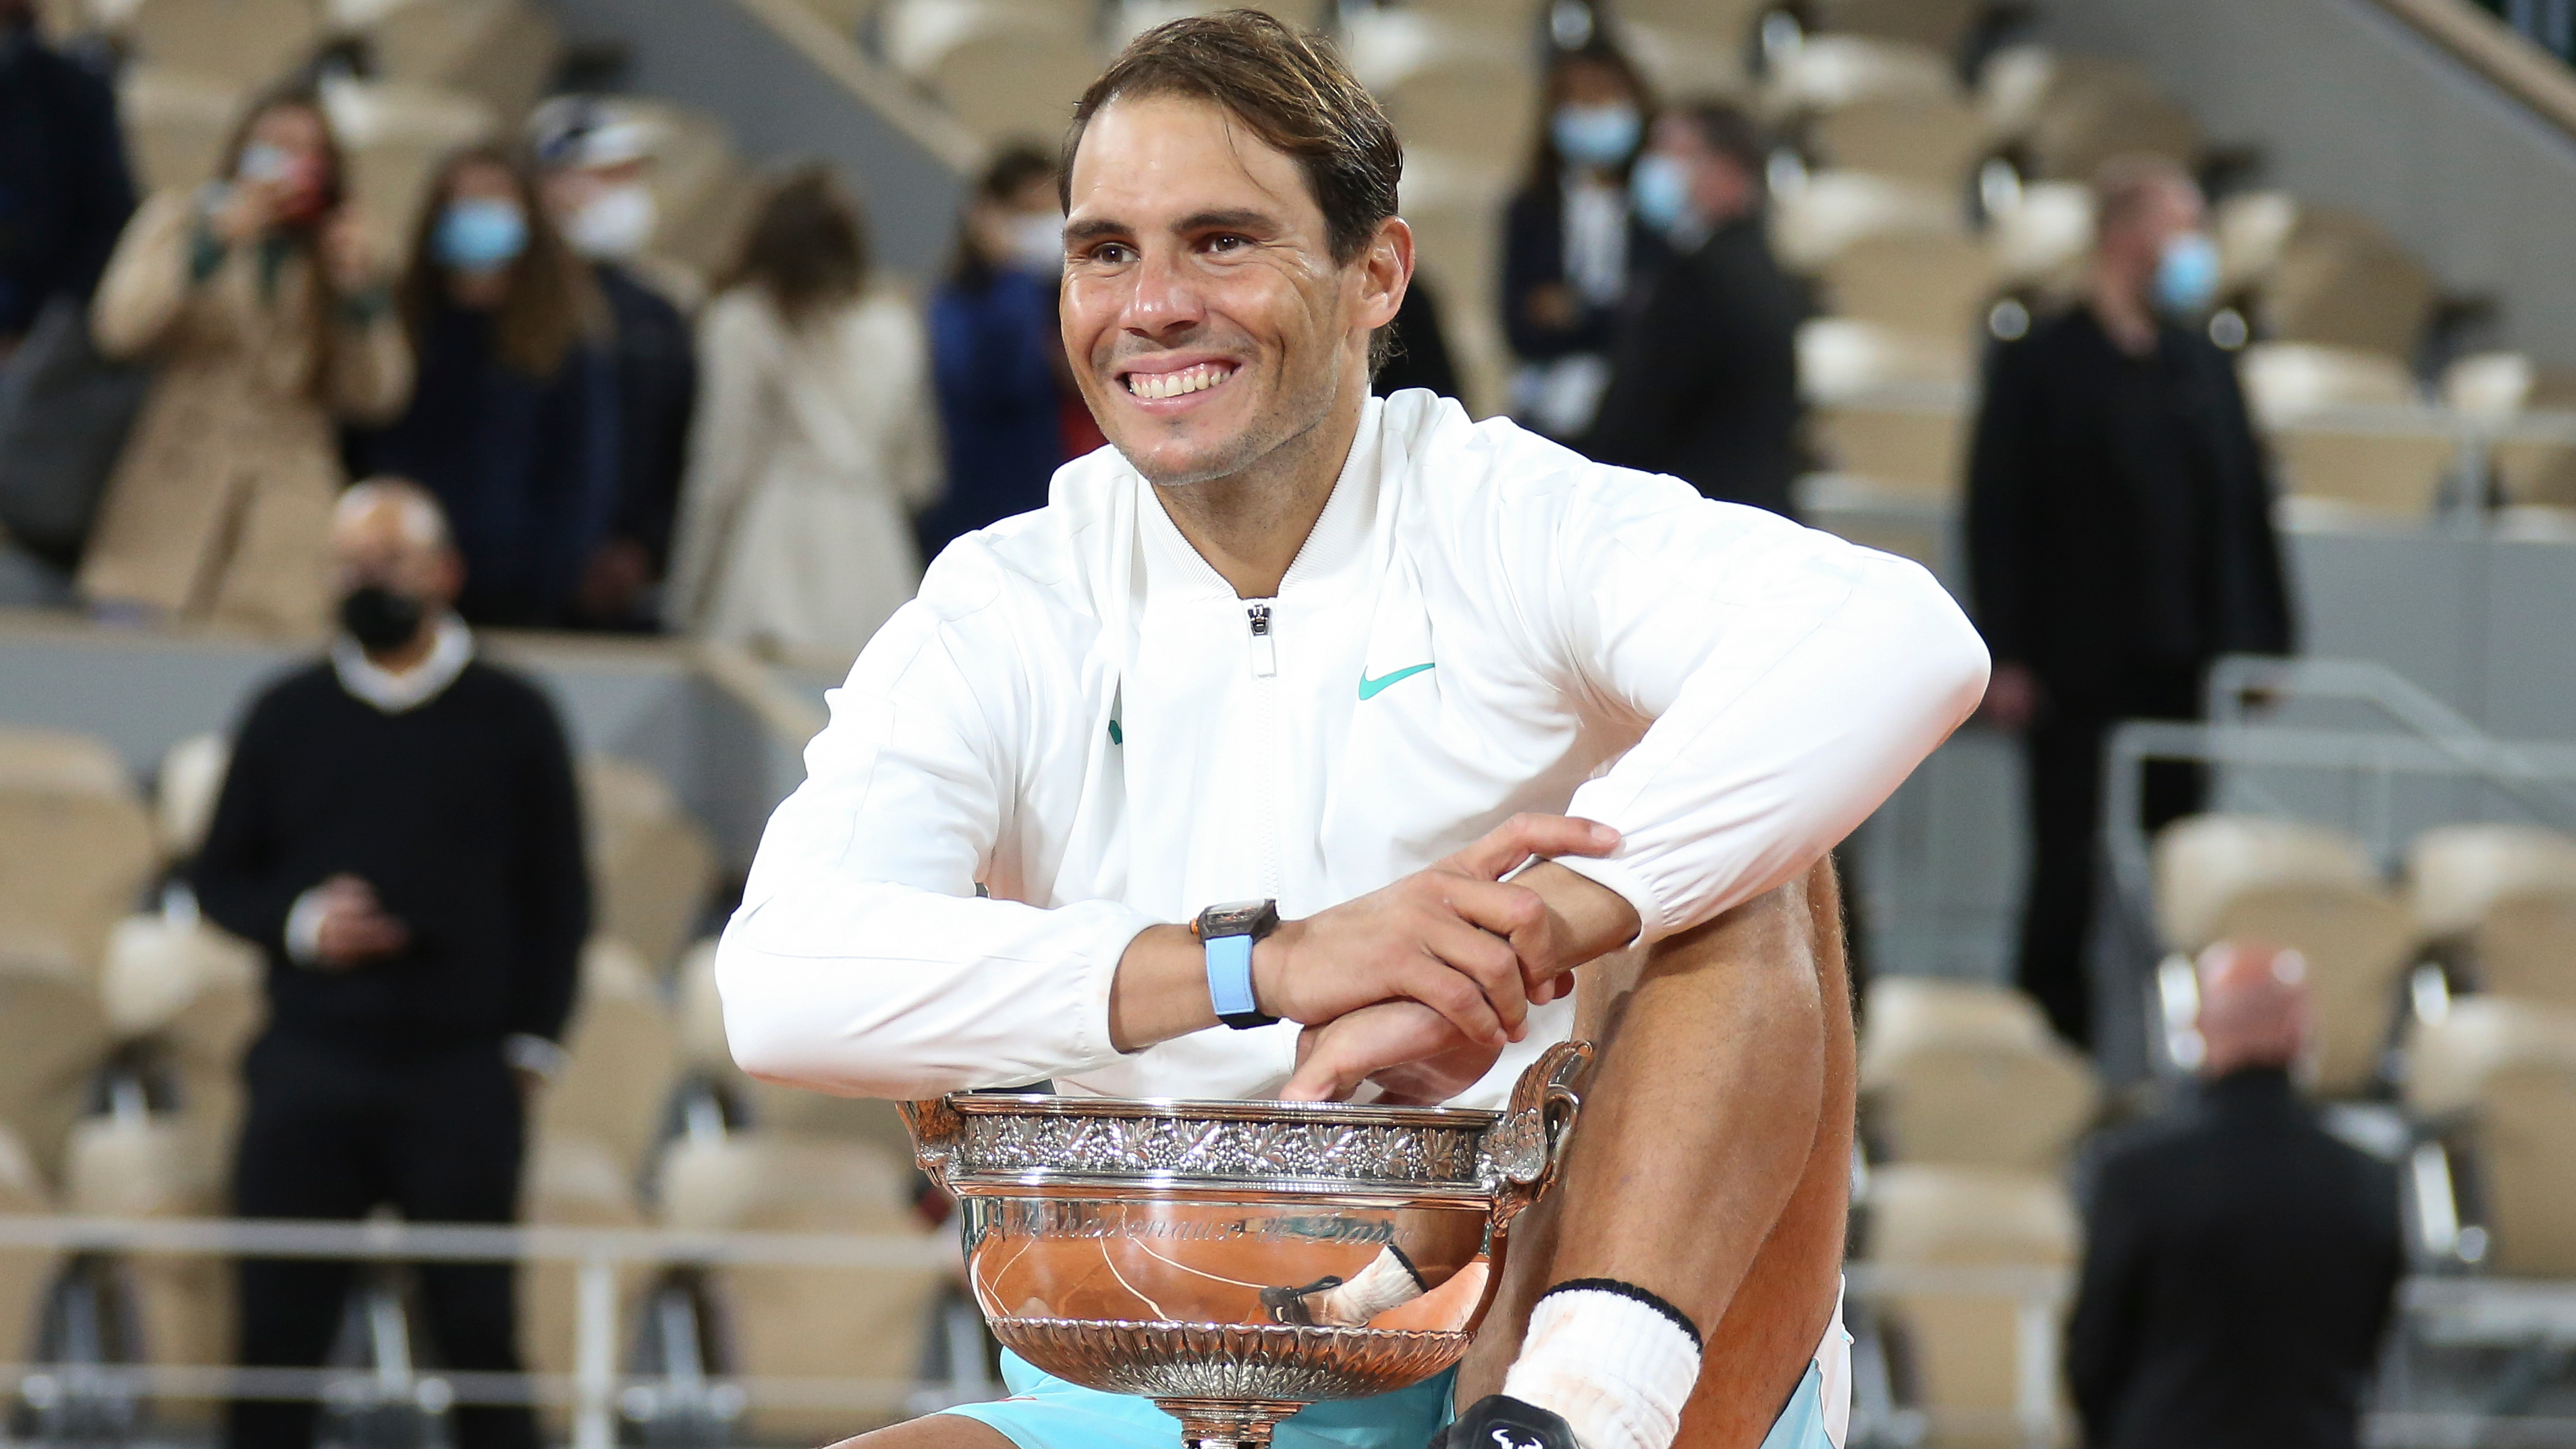 French Open 2020: How easy was Nadal's draw on his way to a 20th grand slam title?